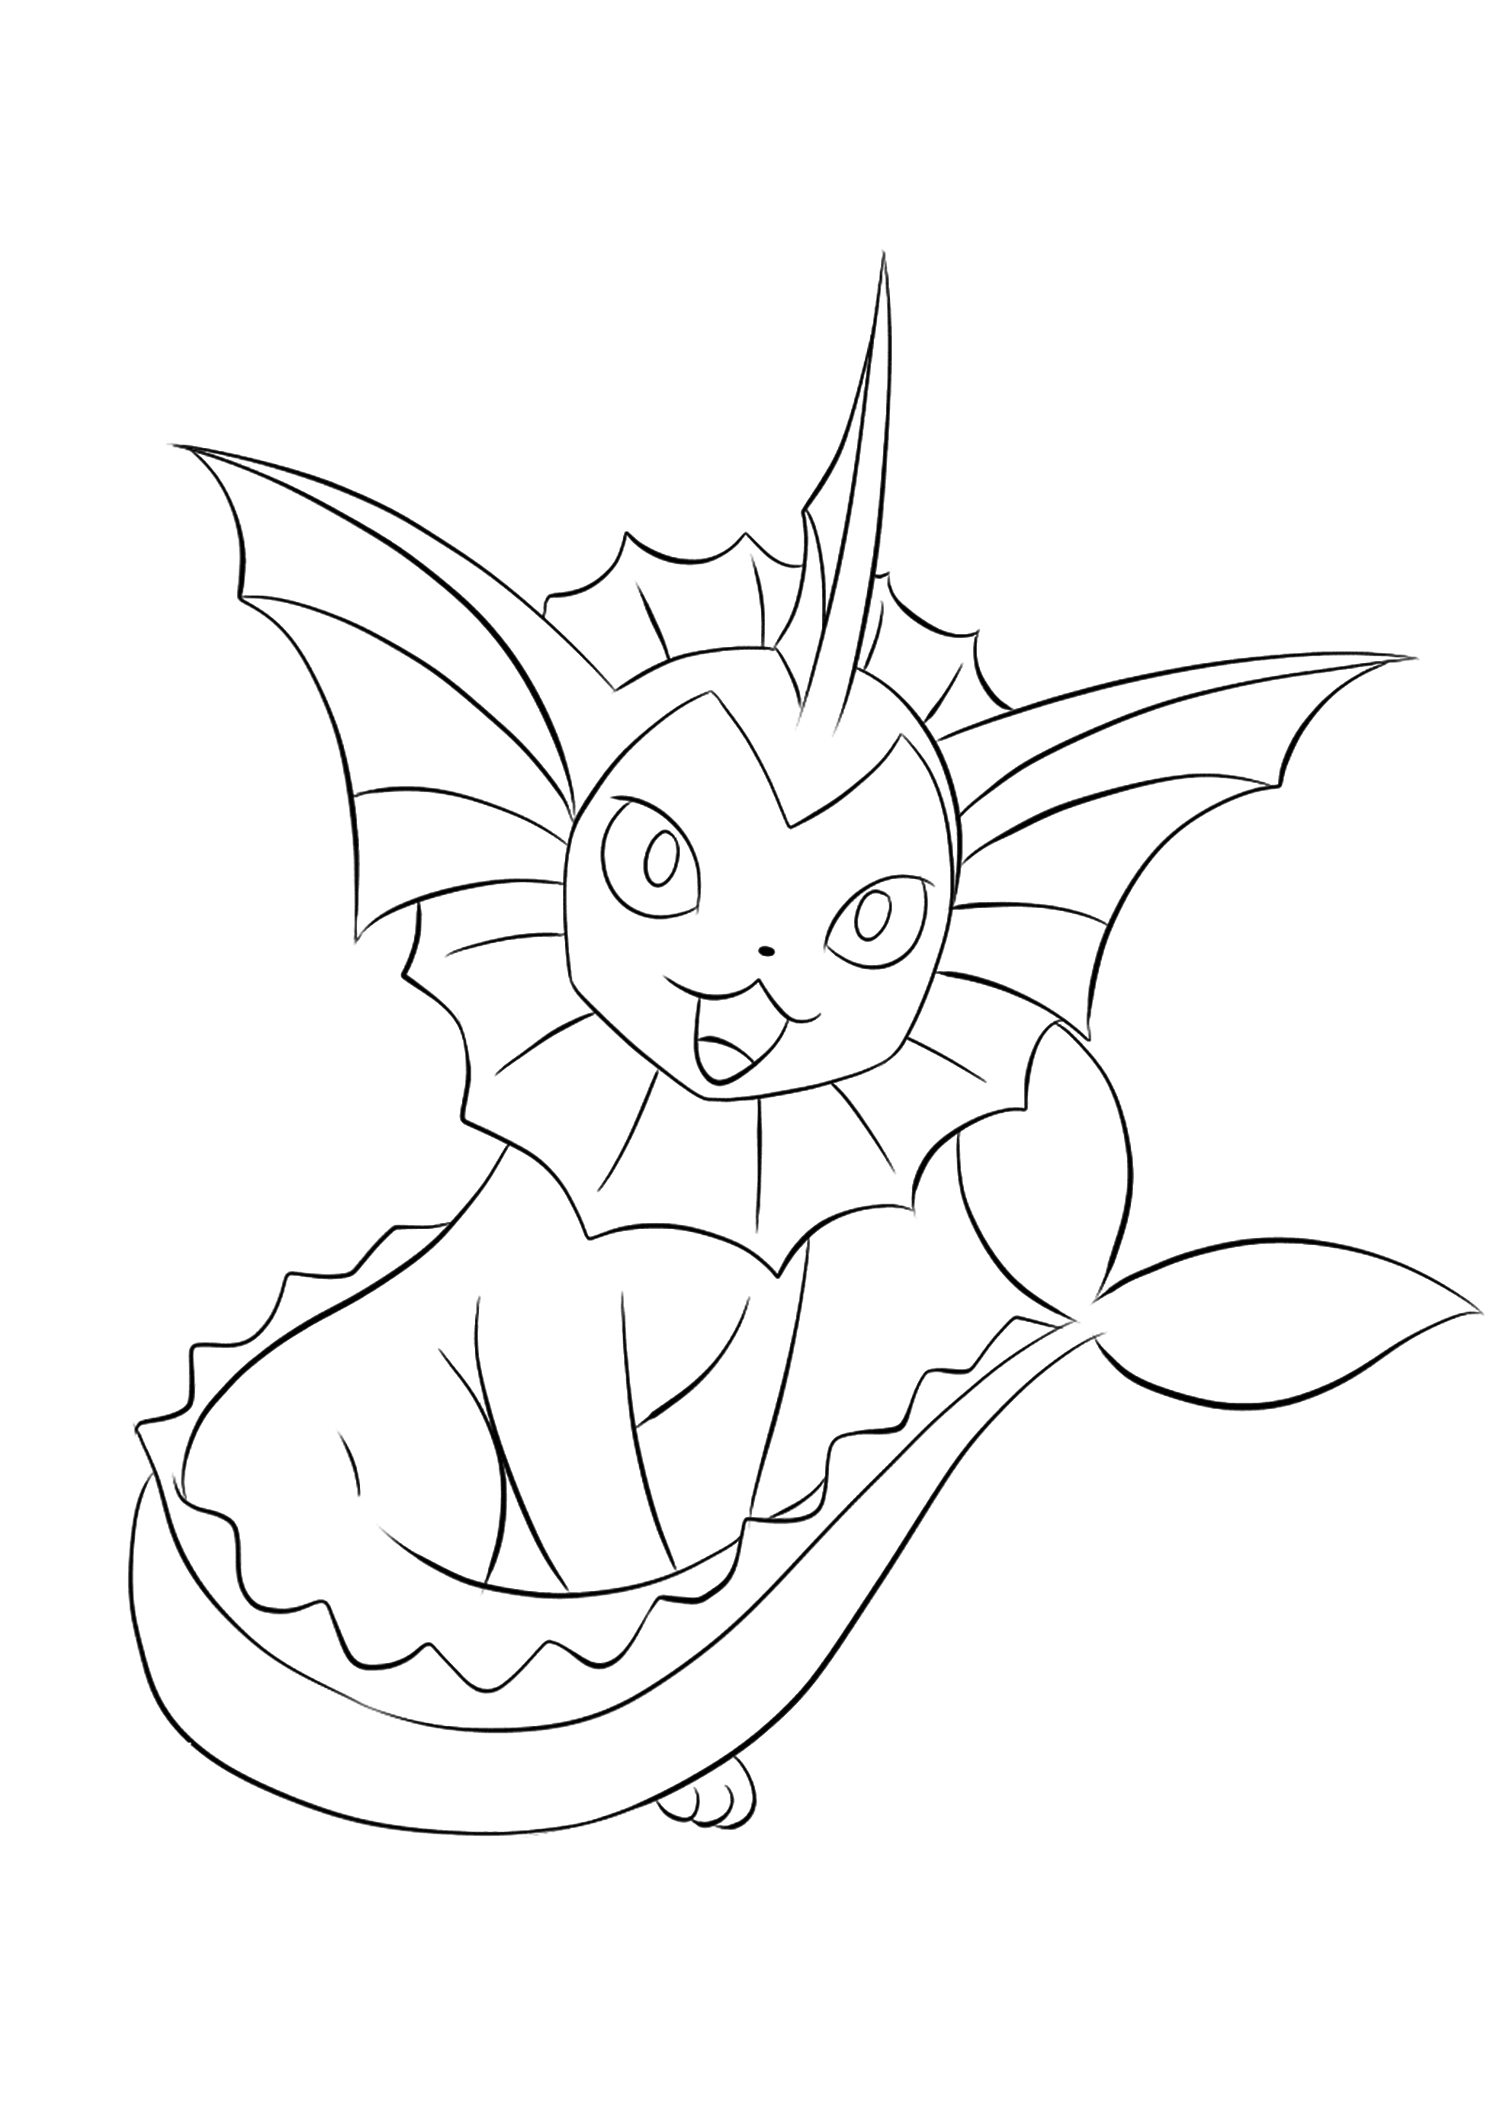 Vaporeon (No.134)Vaporeon Coloring page, Generation I Pokemon of type WaterOriginal image credit: Pokemon linearts by Lilly Gerbil on Deviantart.Permission:  All rights reserved © Pokemon company and Ken Sugimori.